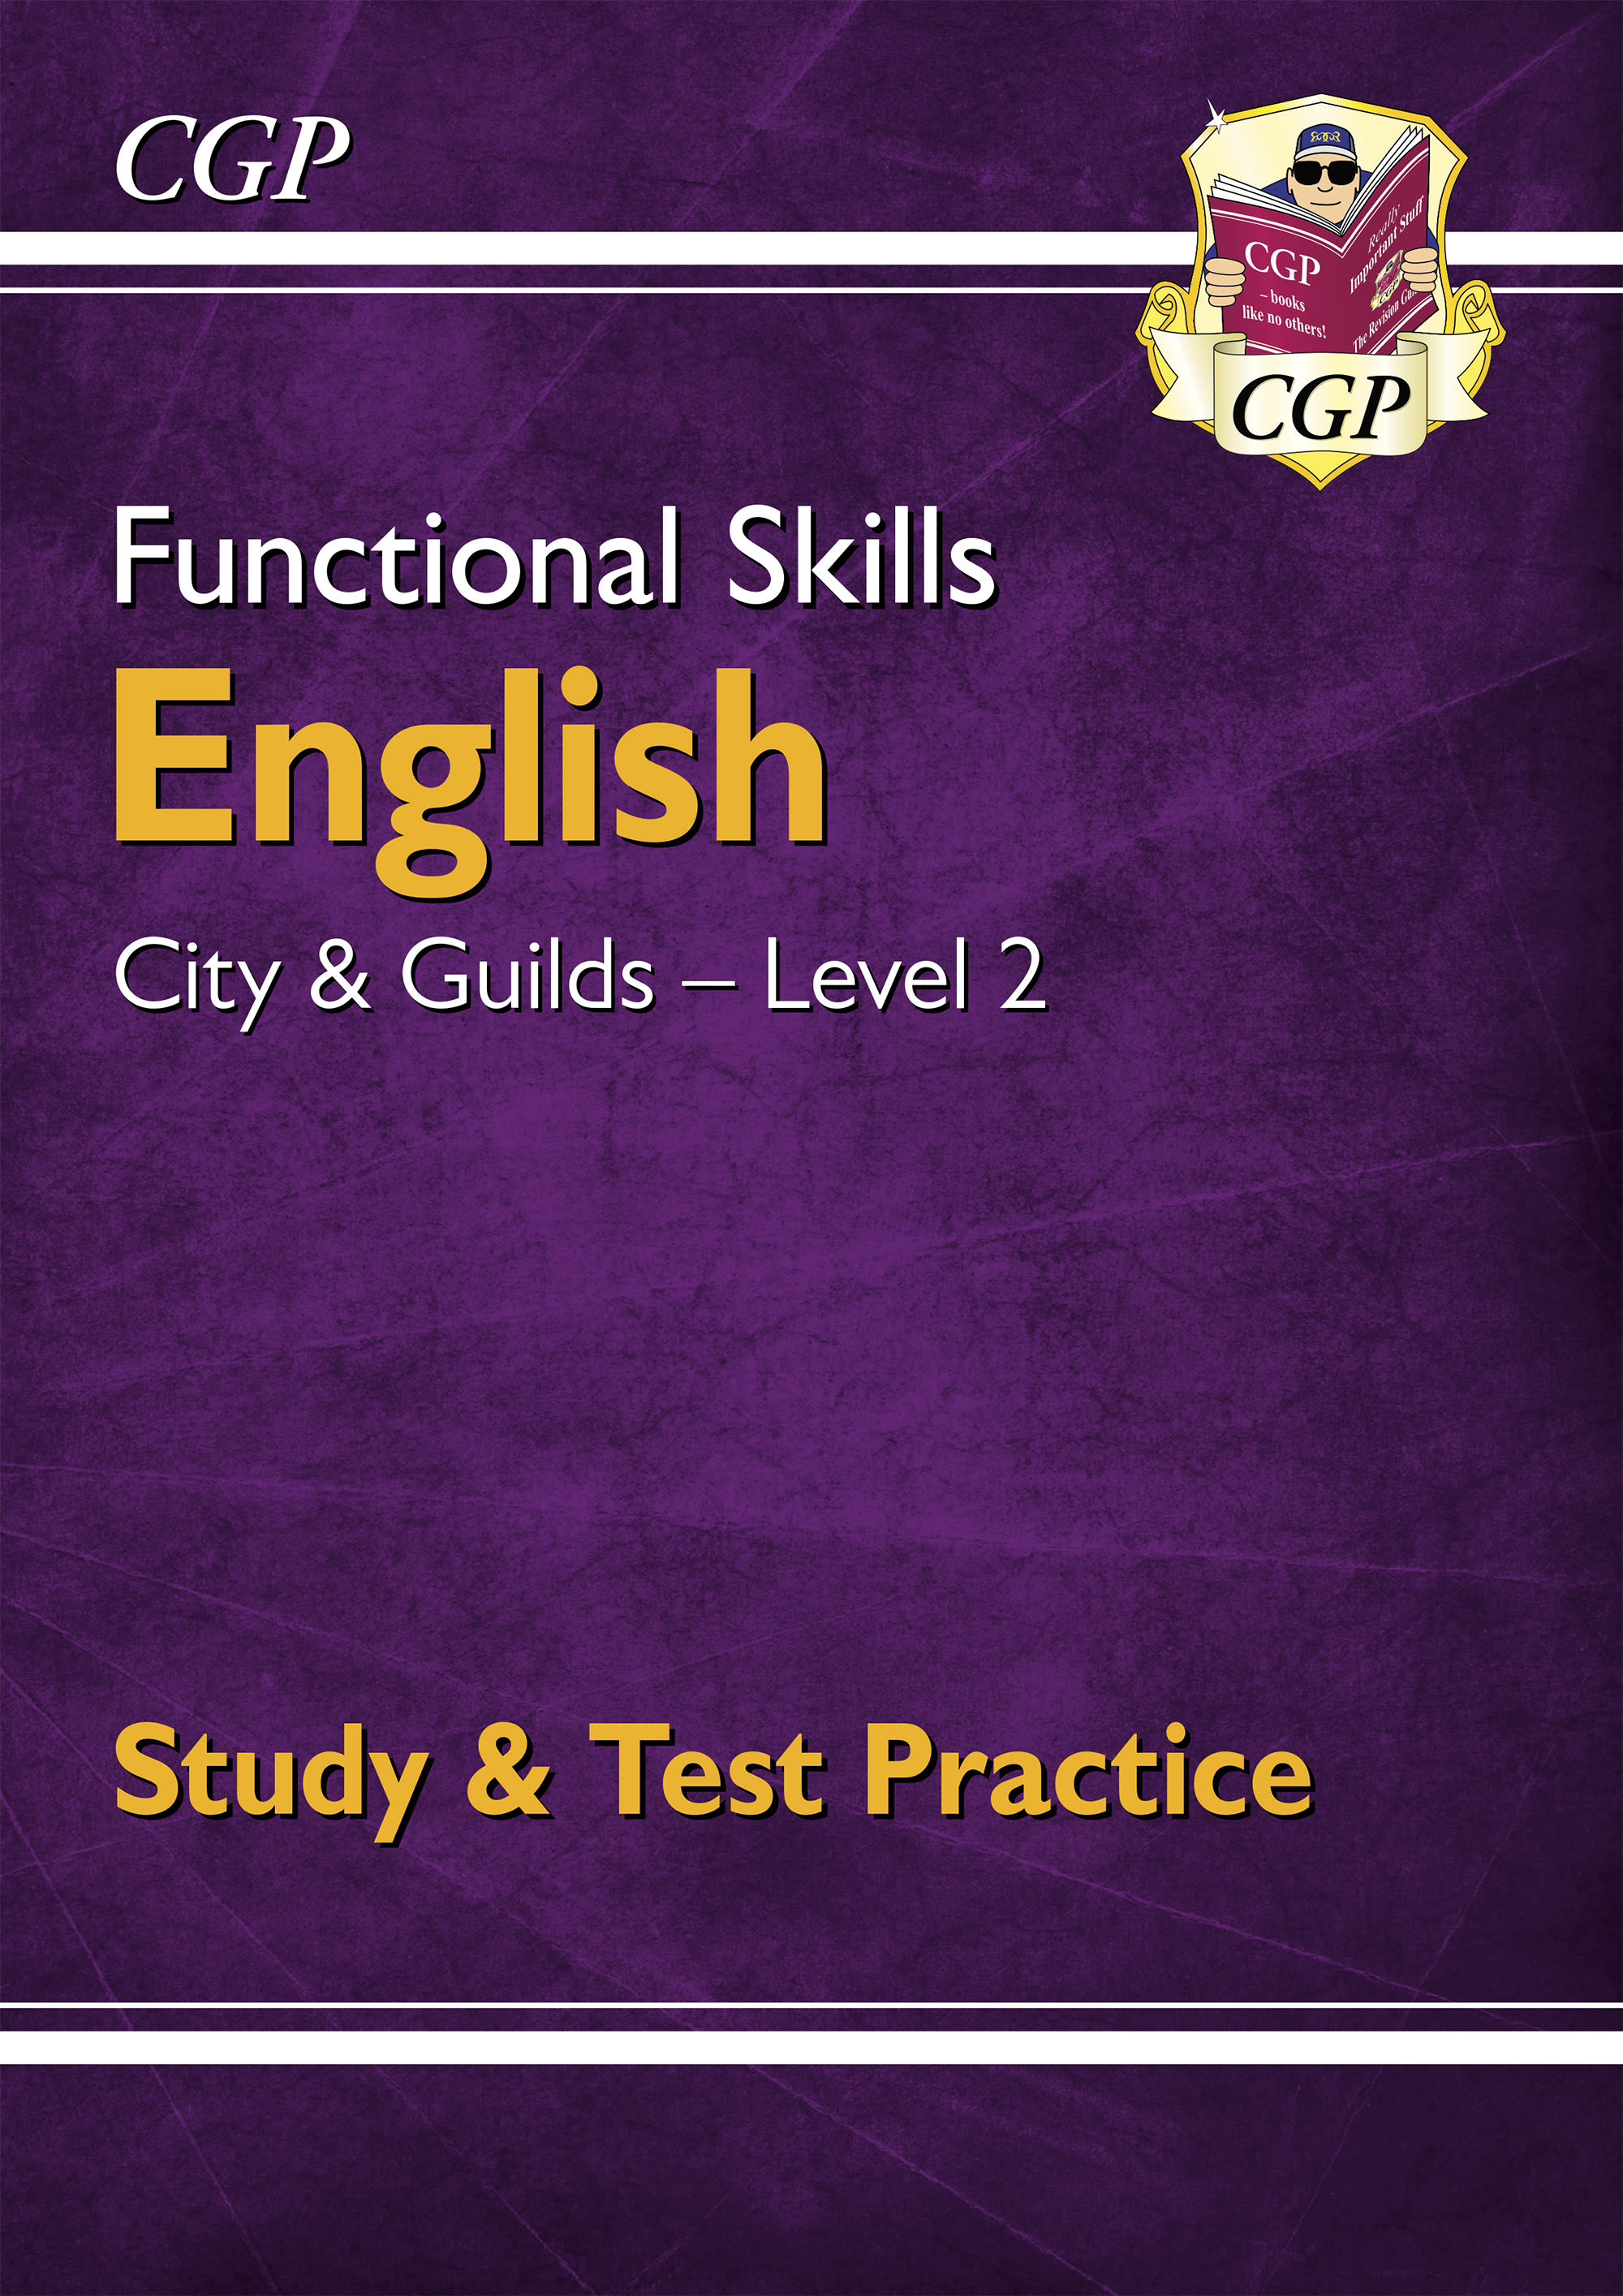 E2CGSRA1D - New Functional Skills English: City & Guilds Level 2 - Study & Test Practice (for 2020 &